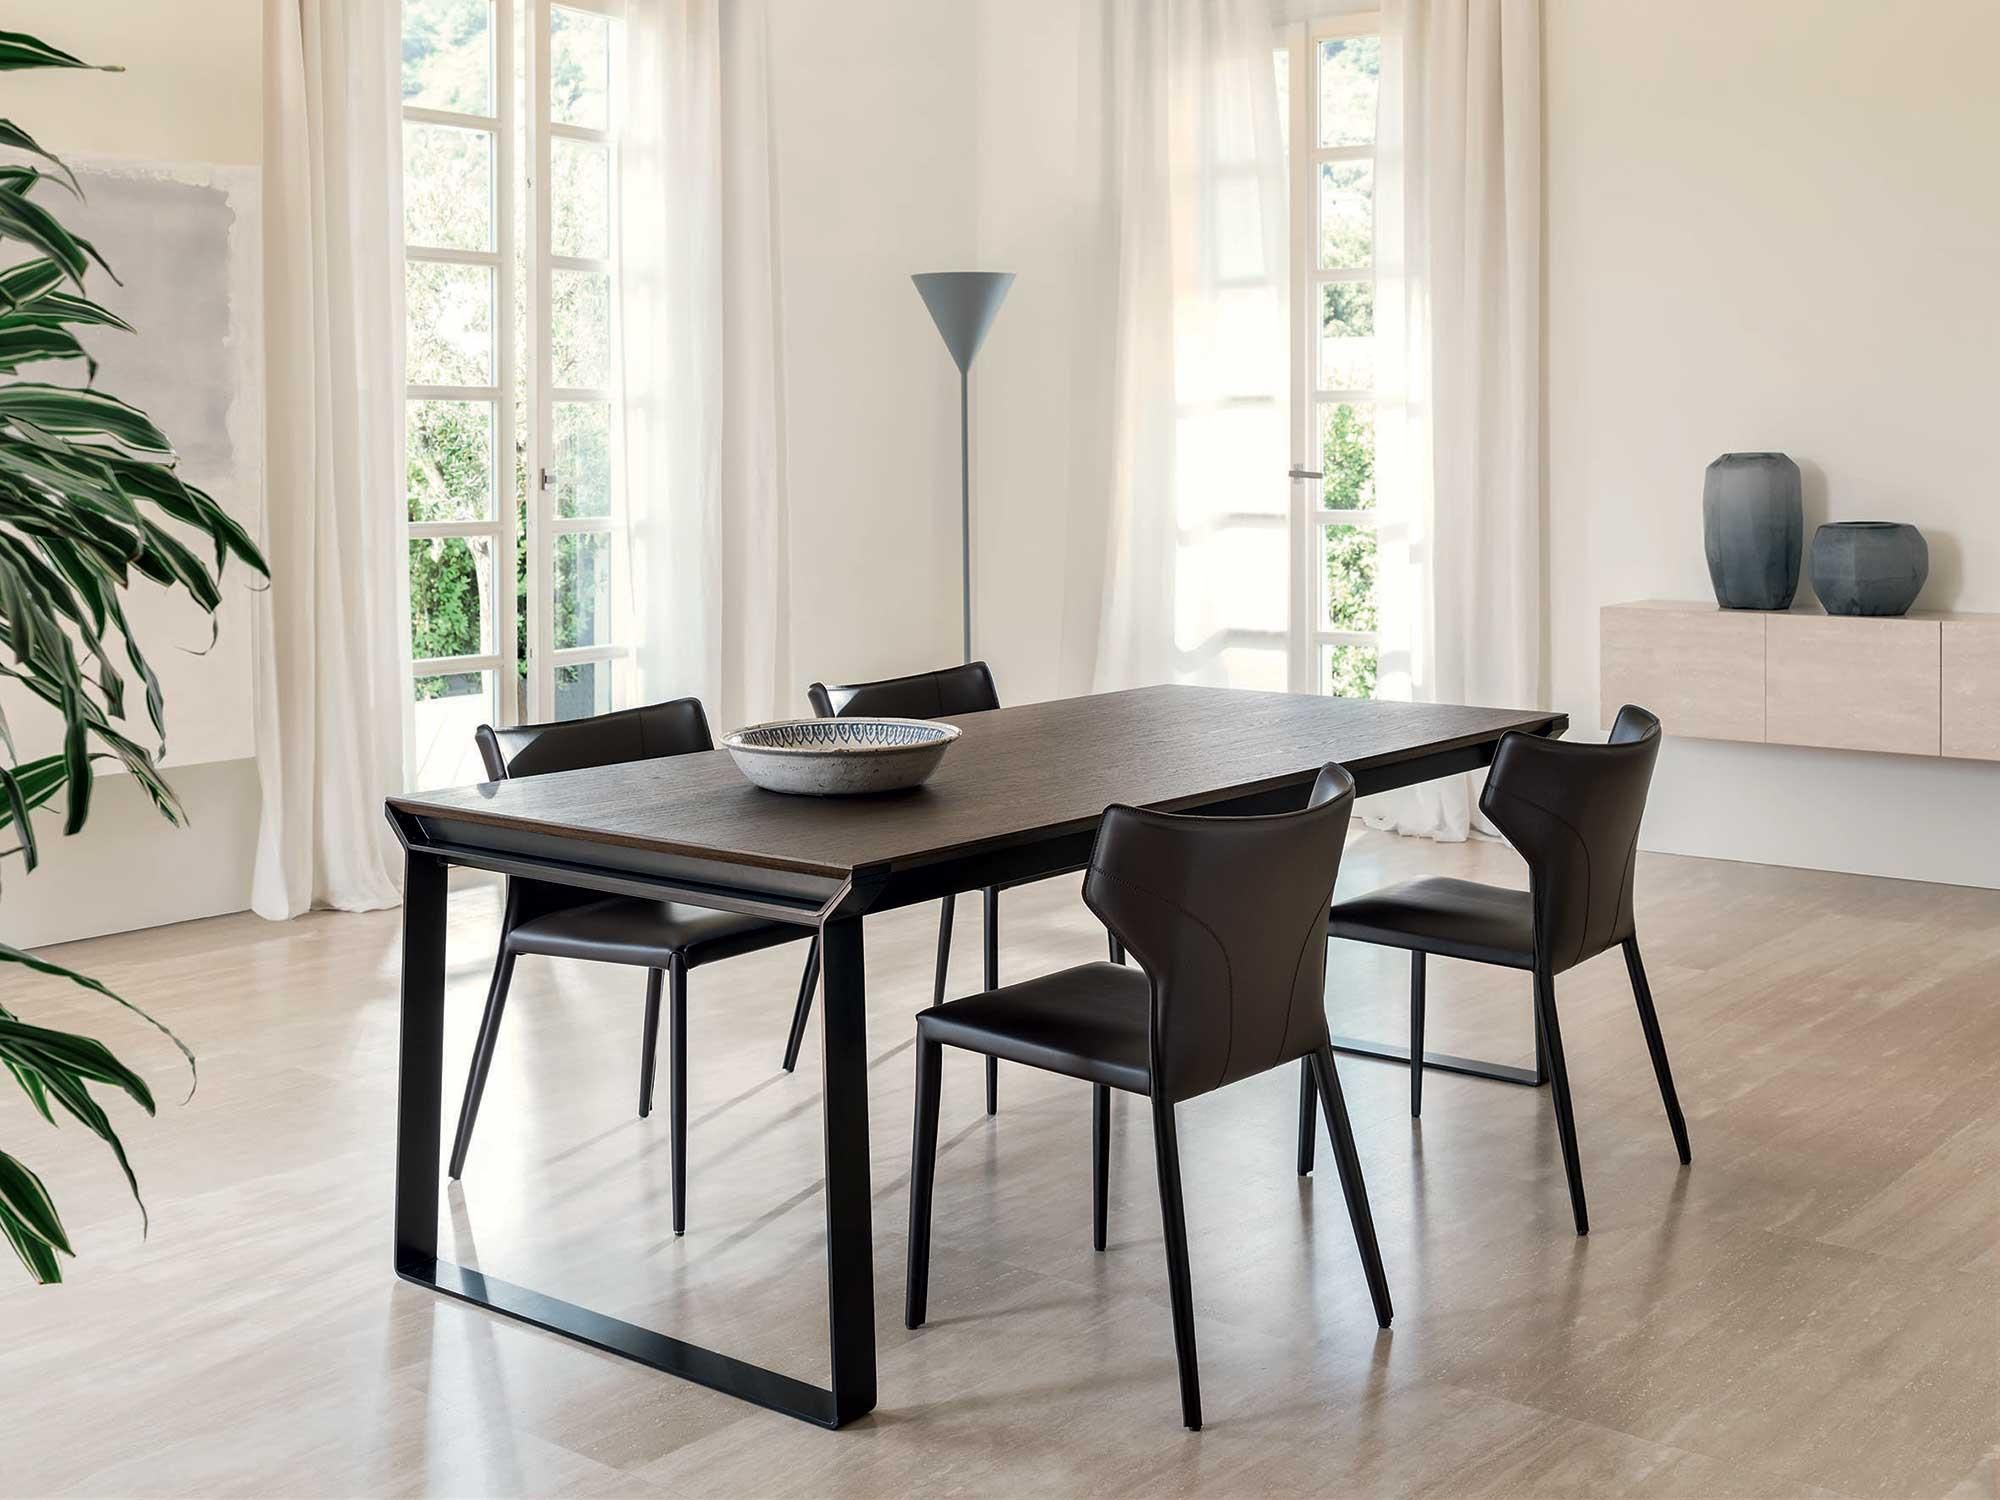 Italian chairs and made in italy tables sofas and design